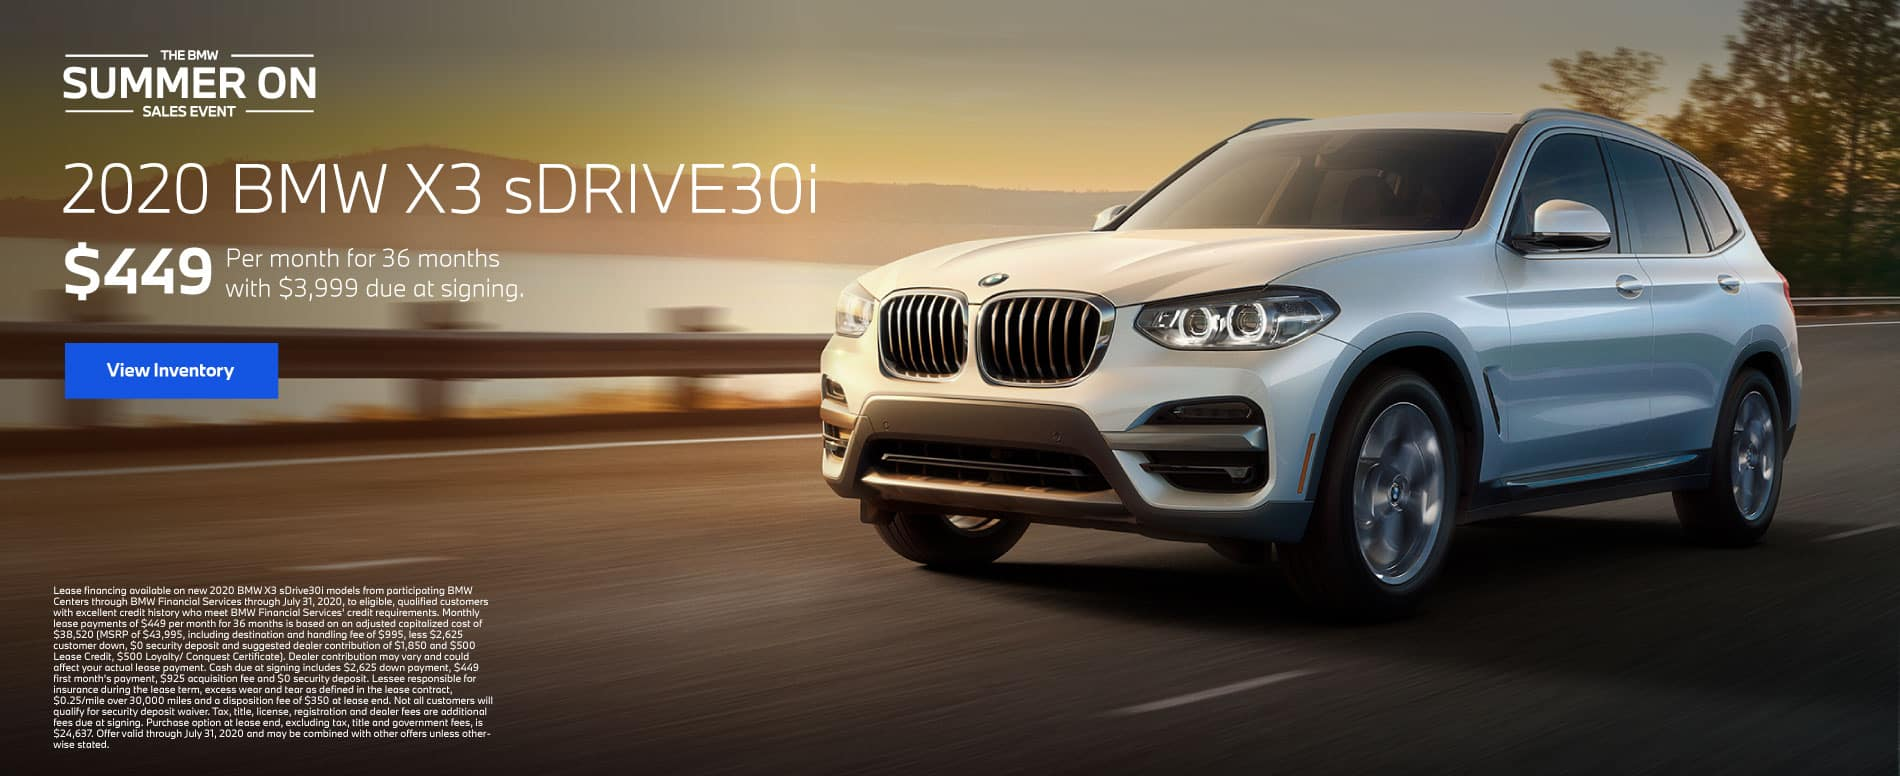 2020 BMW X3 sDrive30i $449 a month for 36 months | View Inventory